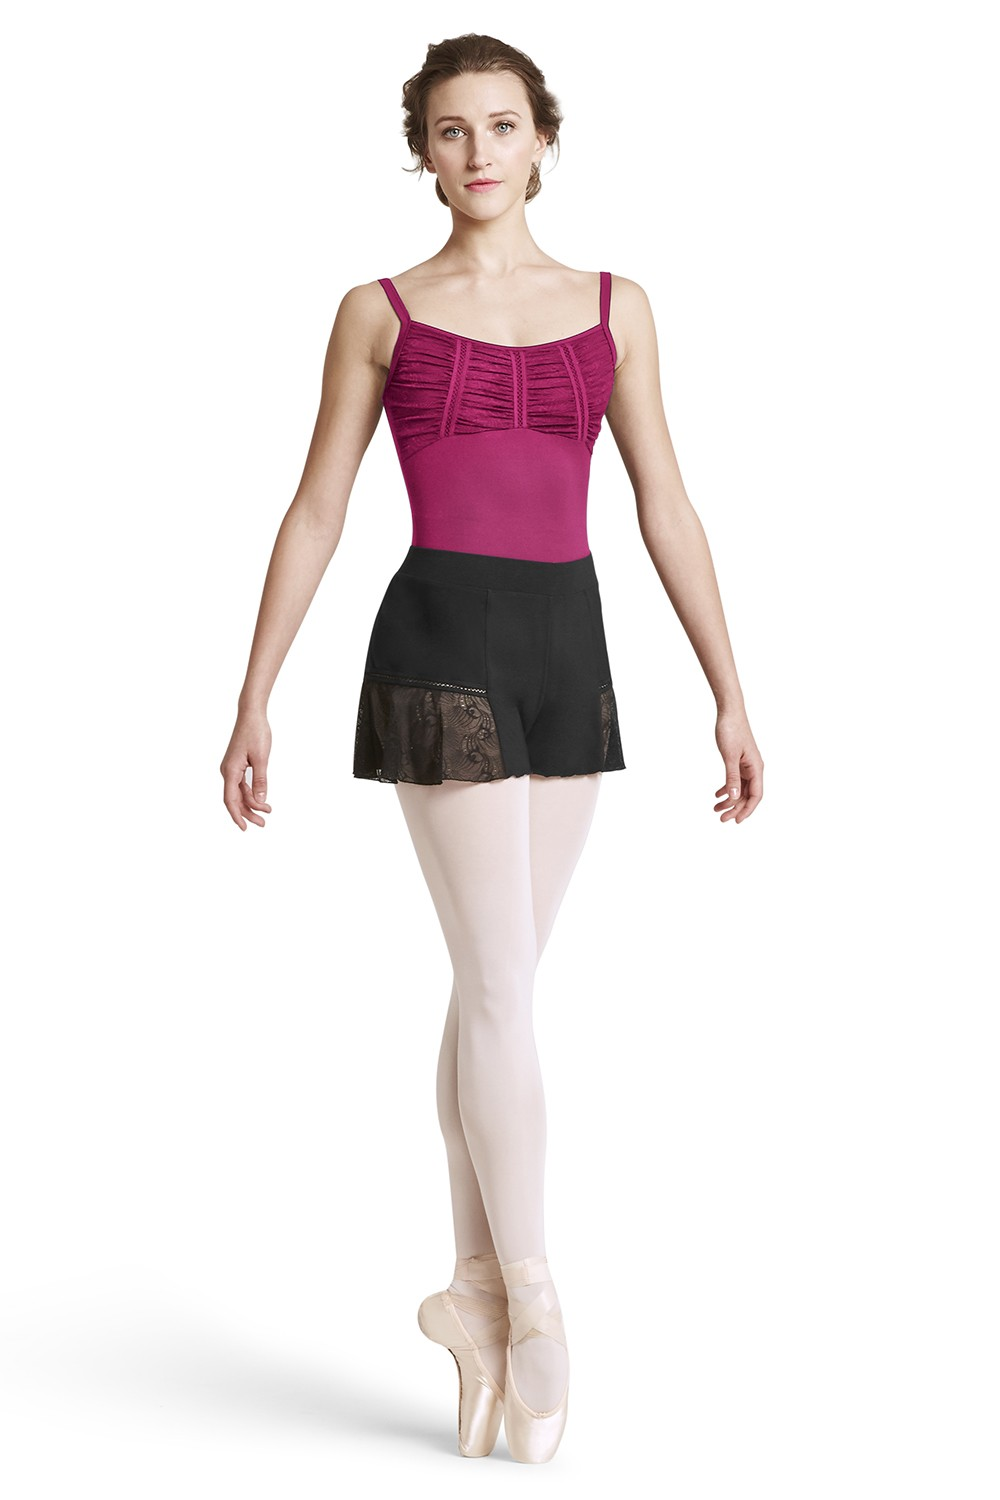 Tana Women's Dance Leotards